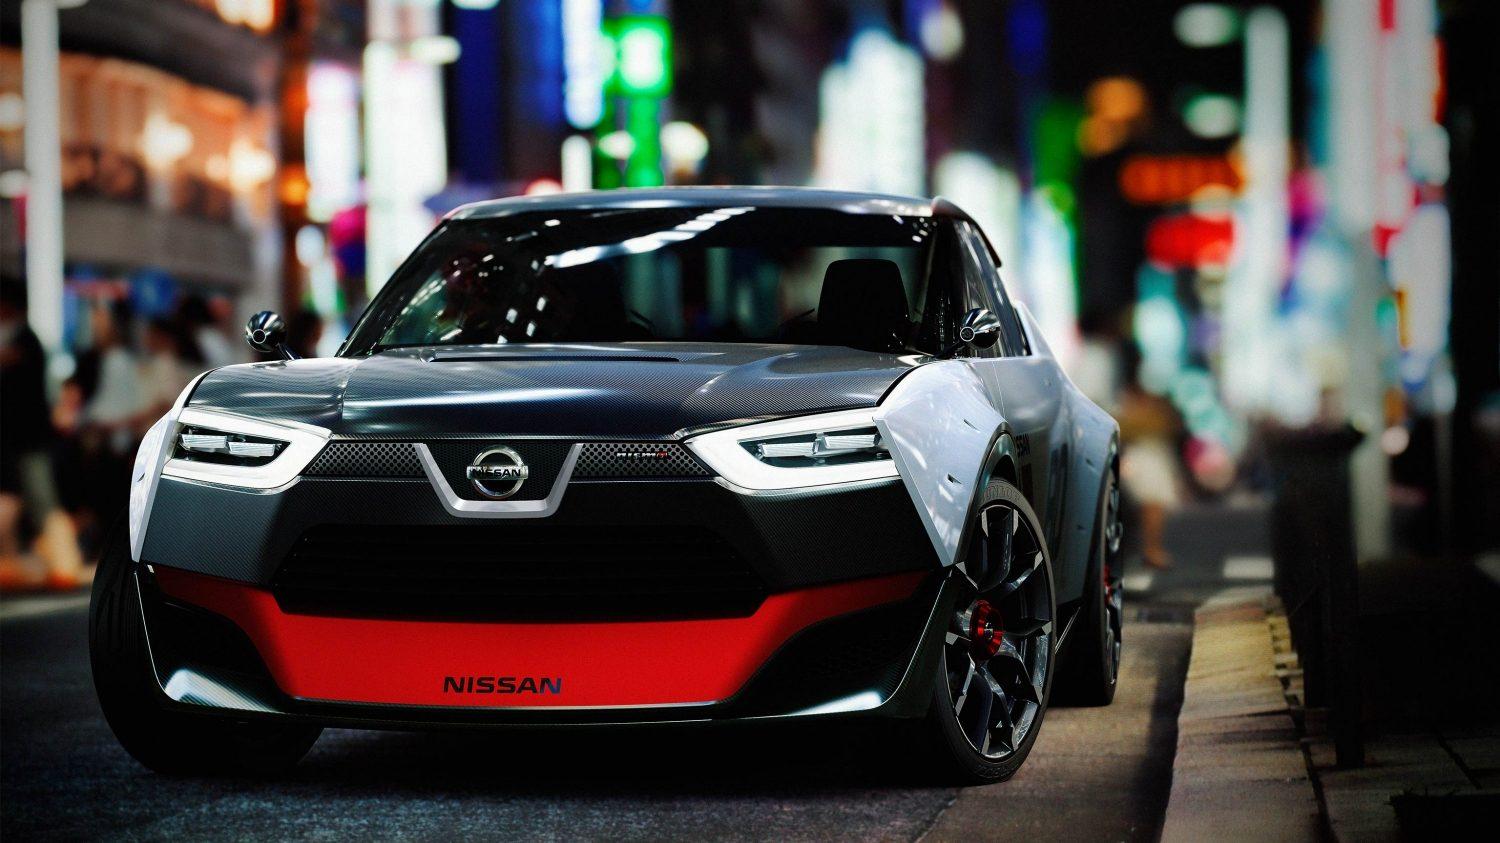 Experience Nissan - Concept car - IDx NISMO - front view